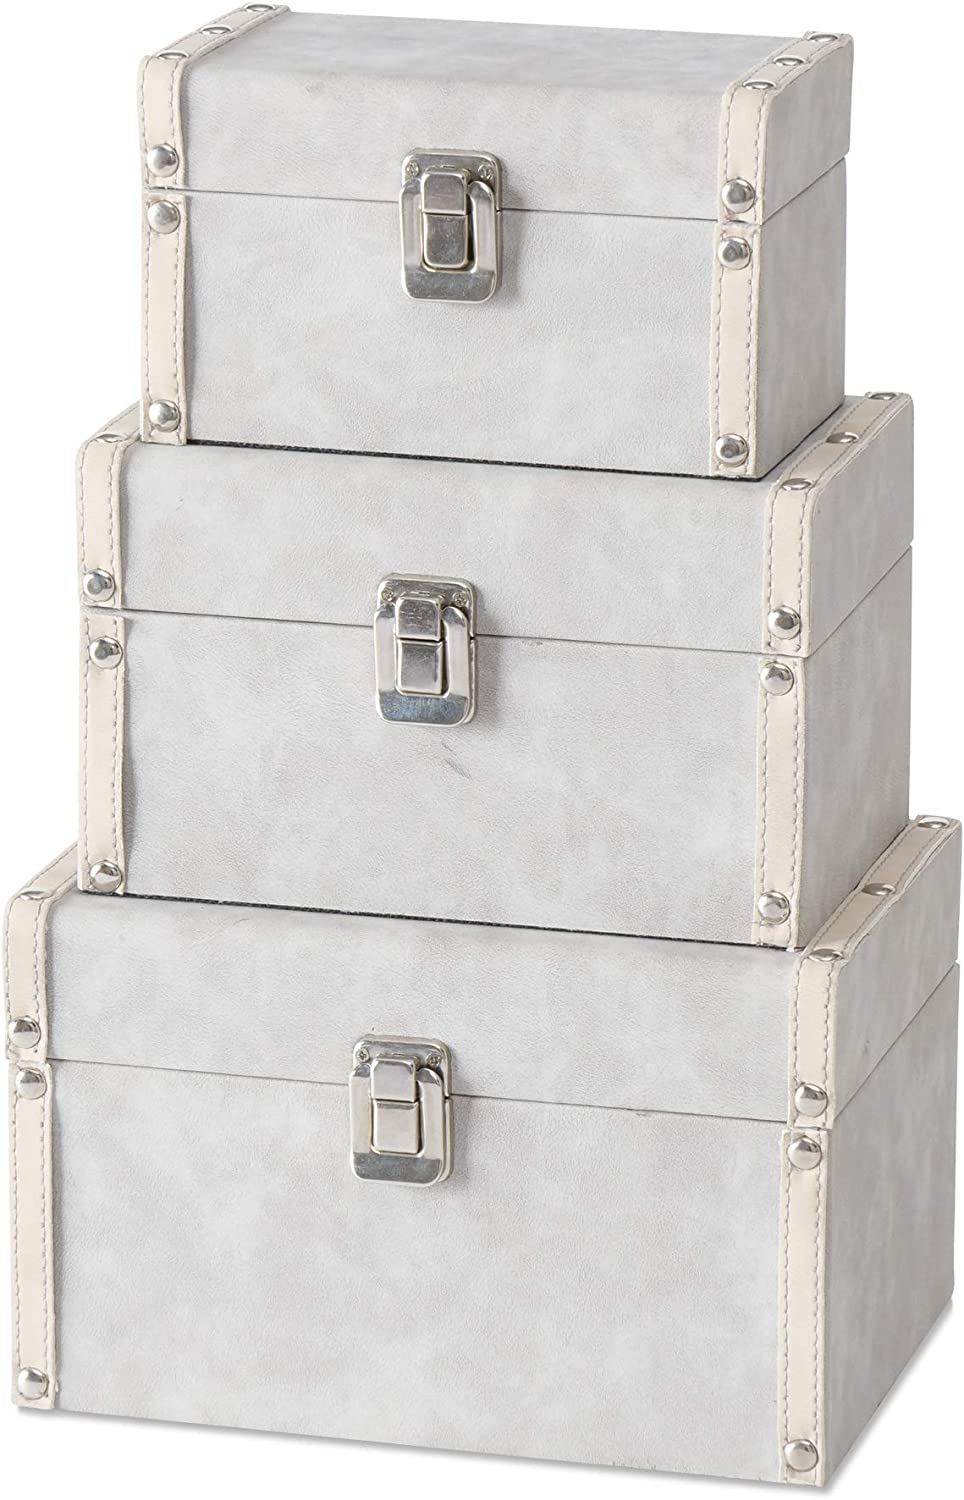 3 Piece Silver Studs Box Set Faux Max 55% OFF Leather and Fabri 40% OFF Cheap Sale Grey Suede